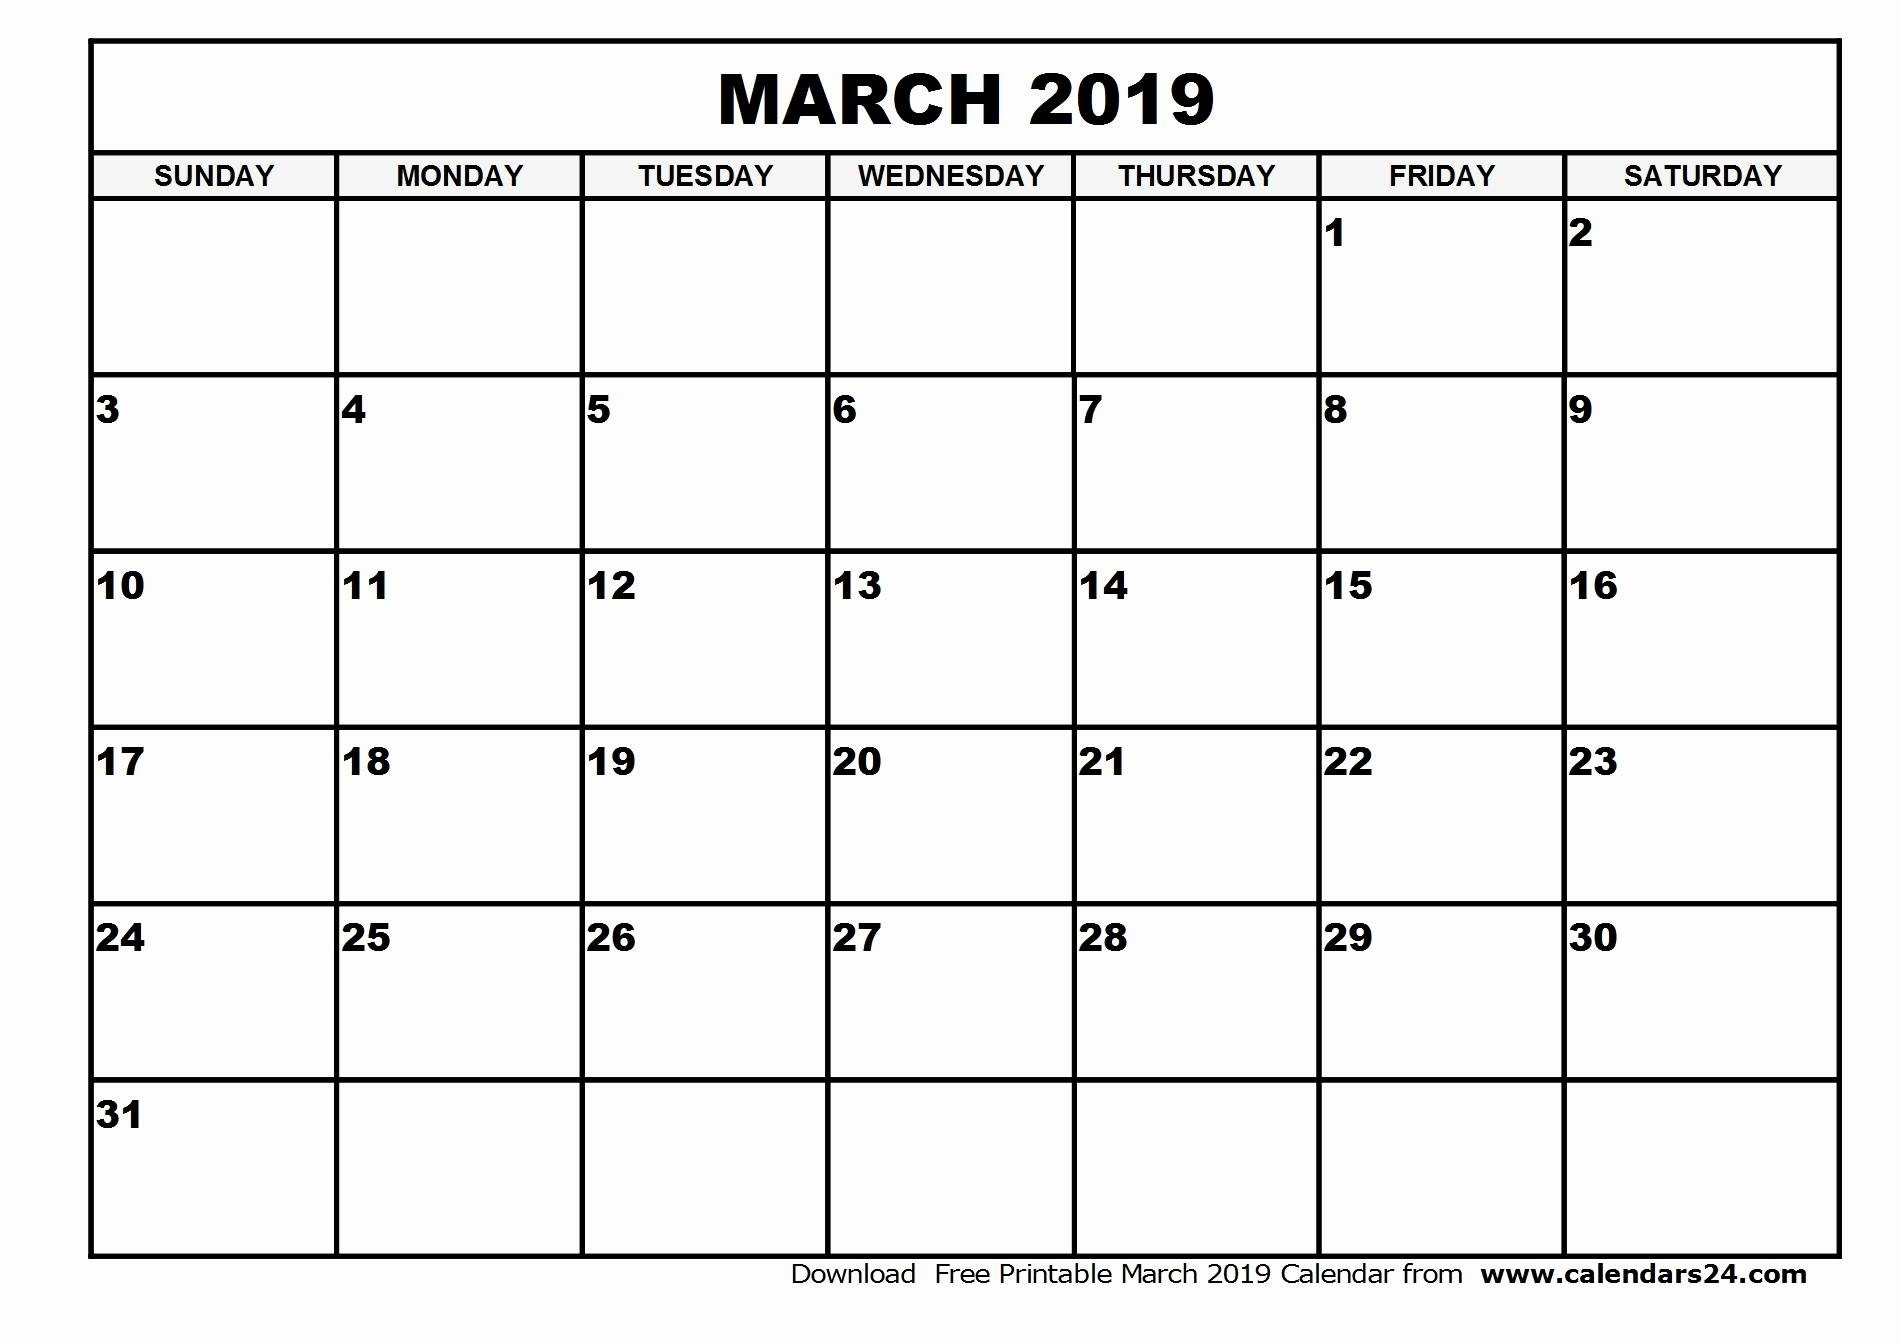 Blank March 2019 Calendar Templates Printable Download - July 2019